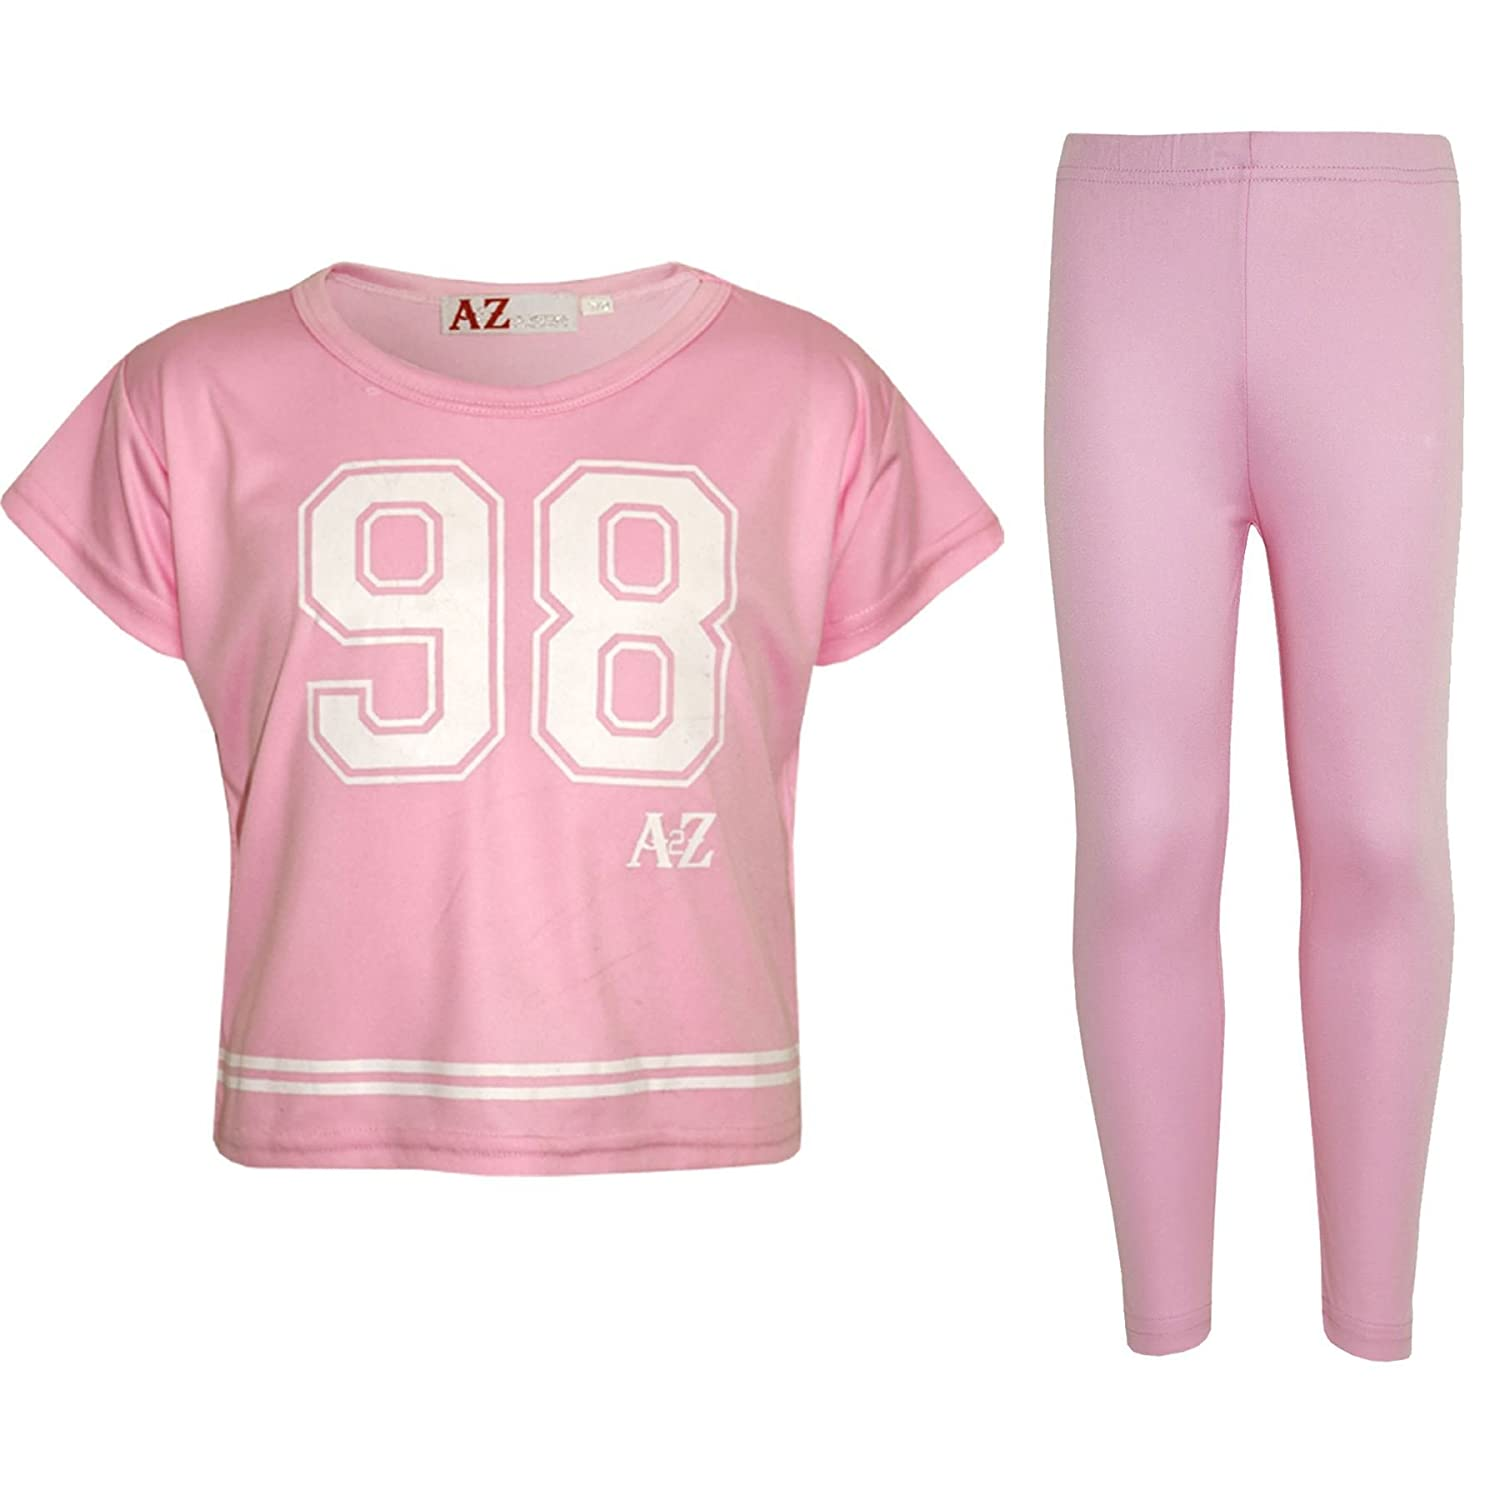 e9001fa38f4 A2Z 4 Kids® Girls Top Kids 98 Print Stylish Crop Top & Fashion Legging Set.  98 Printed On The Front Of The Top. Available Size; 5-6 Years, 7-8 Years,  ...